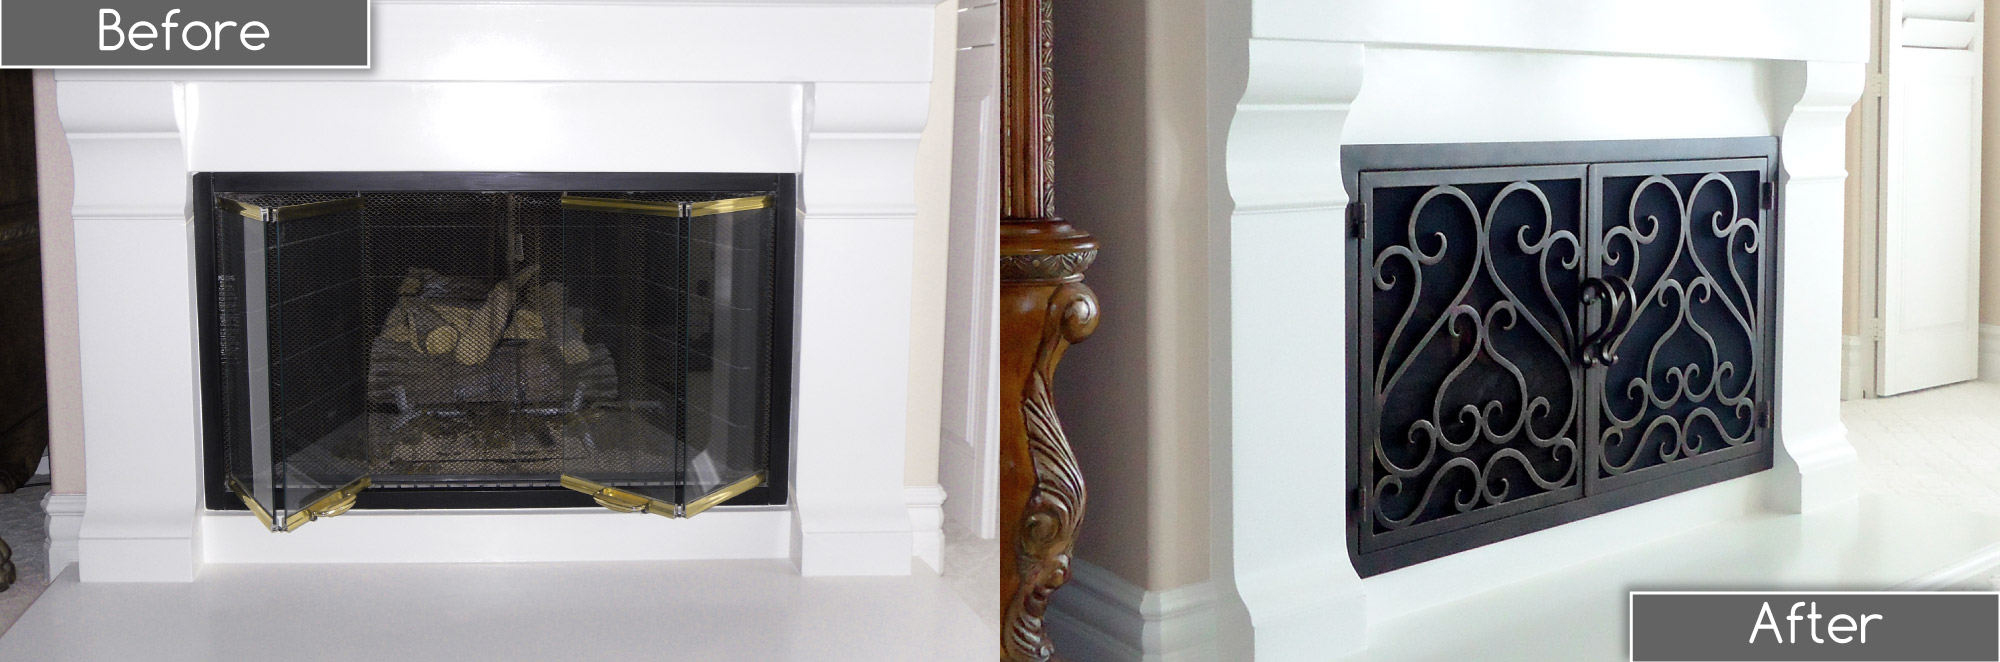 Sequoia 3 Fireplace Door Before and After